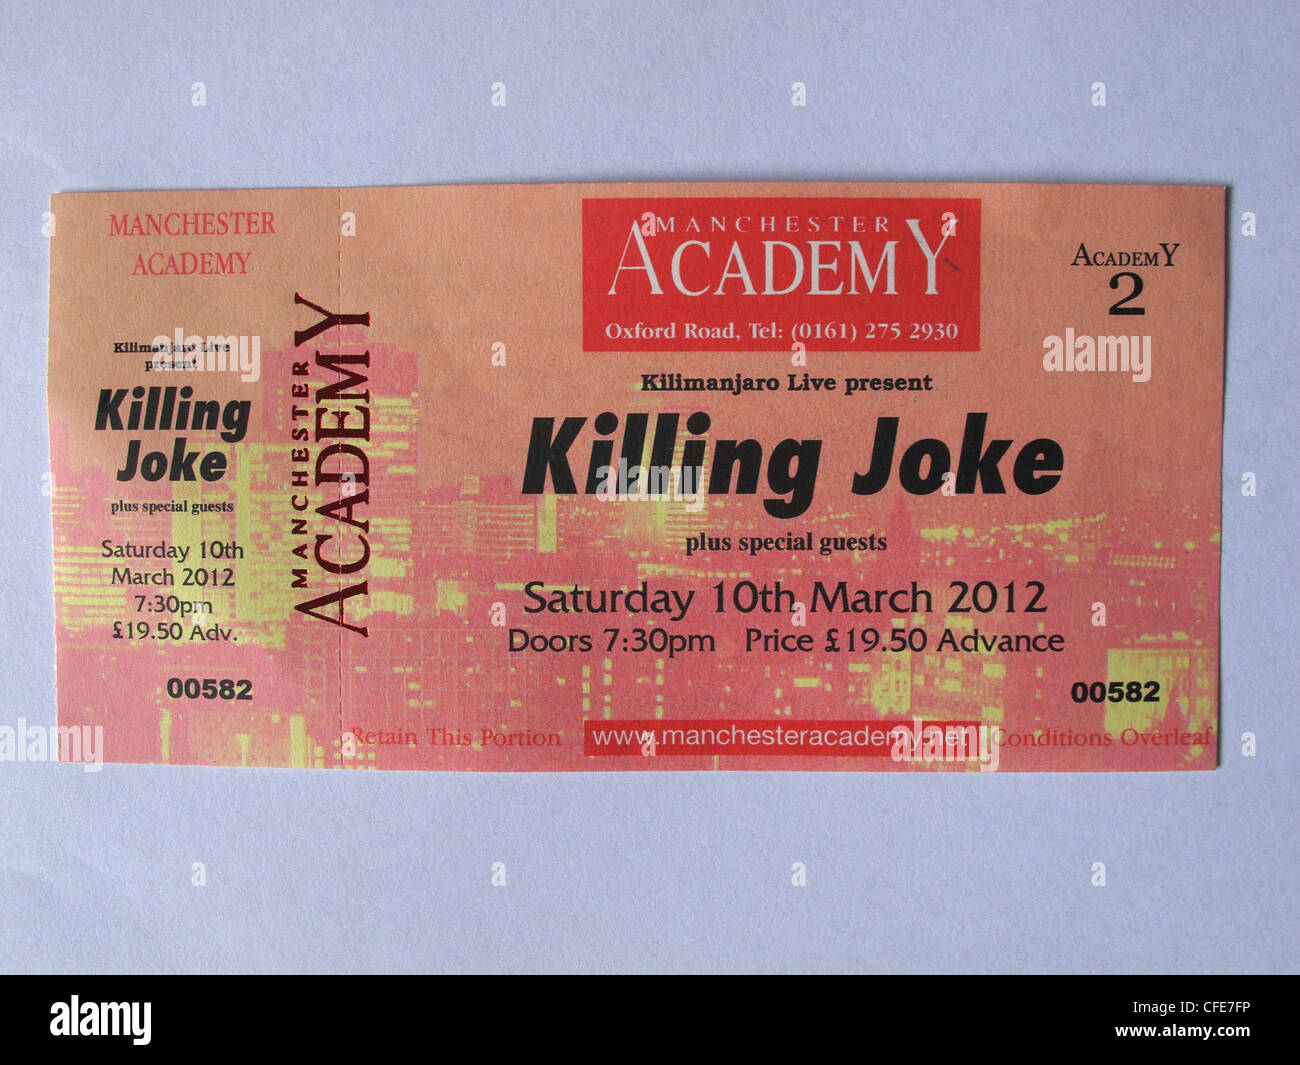 Killing,Joke,concert,ticket,for,Manchester,Academy,10th,March,2012,held,in,an,hand,gotonysmith,historic,gig,live,reunion,re-union,re,union,standing,seated,venue,gig,cartel,O2,stalls,Greater,Uni,Academy,Roadhouse,Night,and,Day,&,Ruby,lounge,high,price,prices,commission,Ticketline,Classic,1980's,1980s,online ticketting Ticketmaster England UK,gotonysmith,Buy Pictures of,Buy Images Of